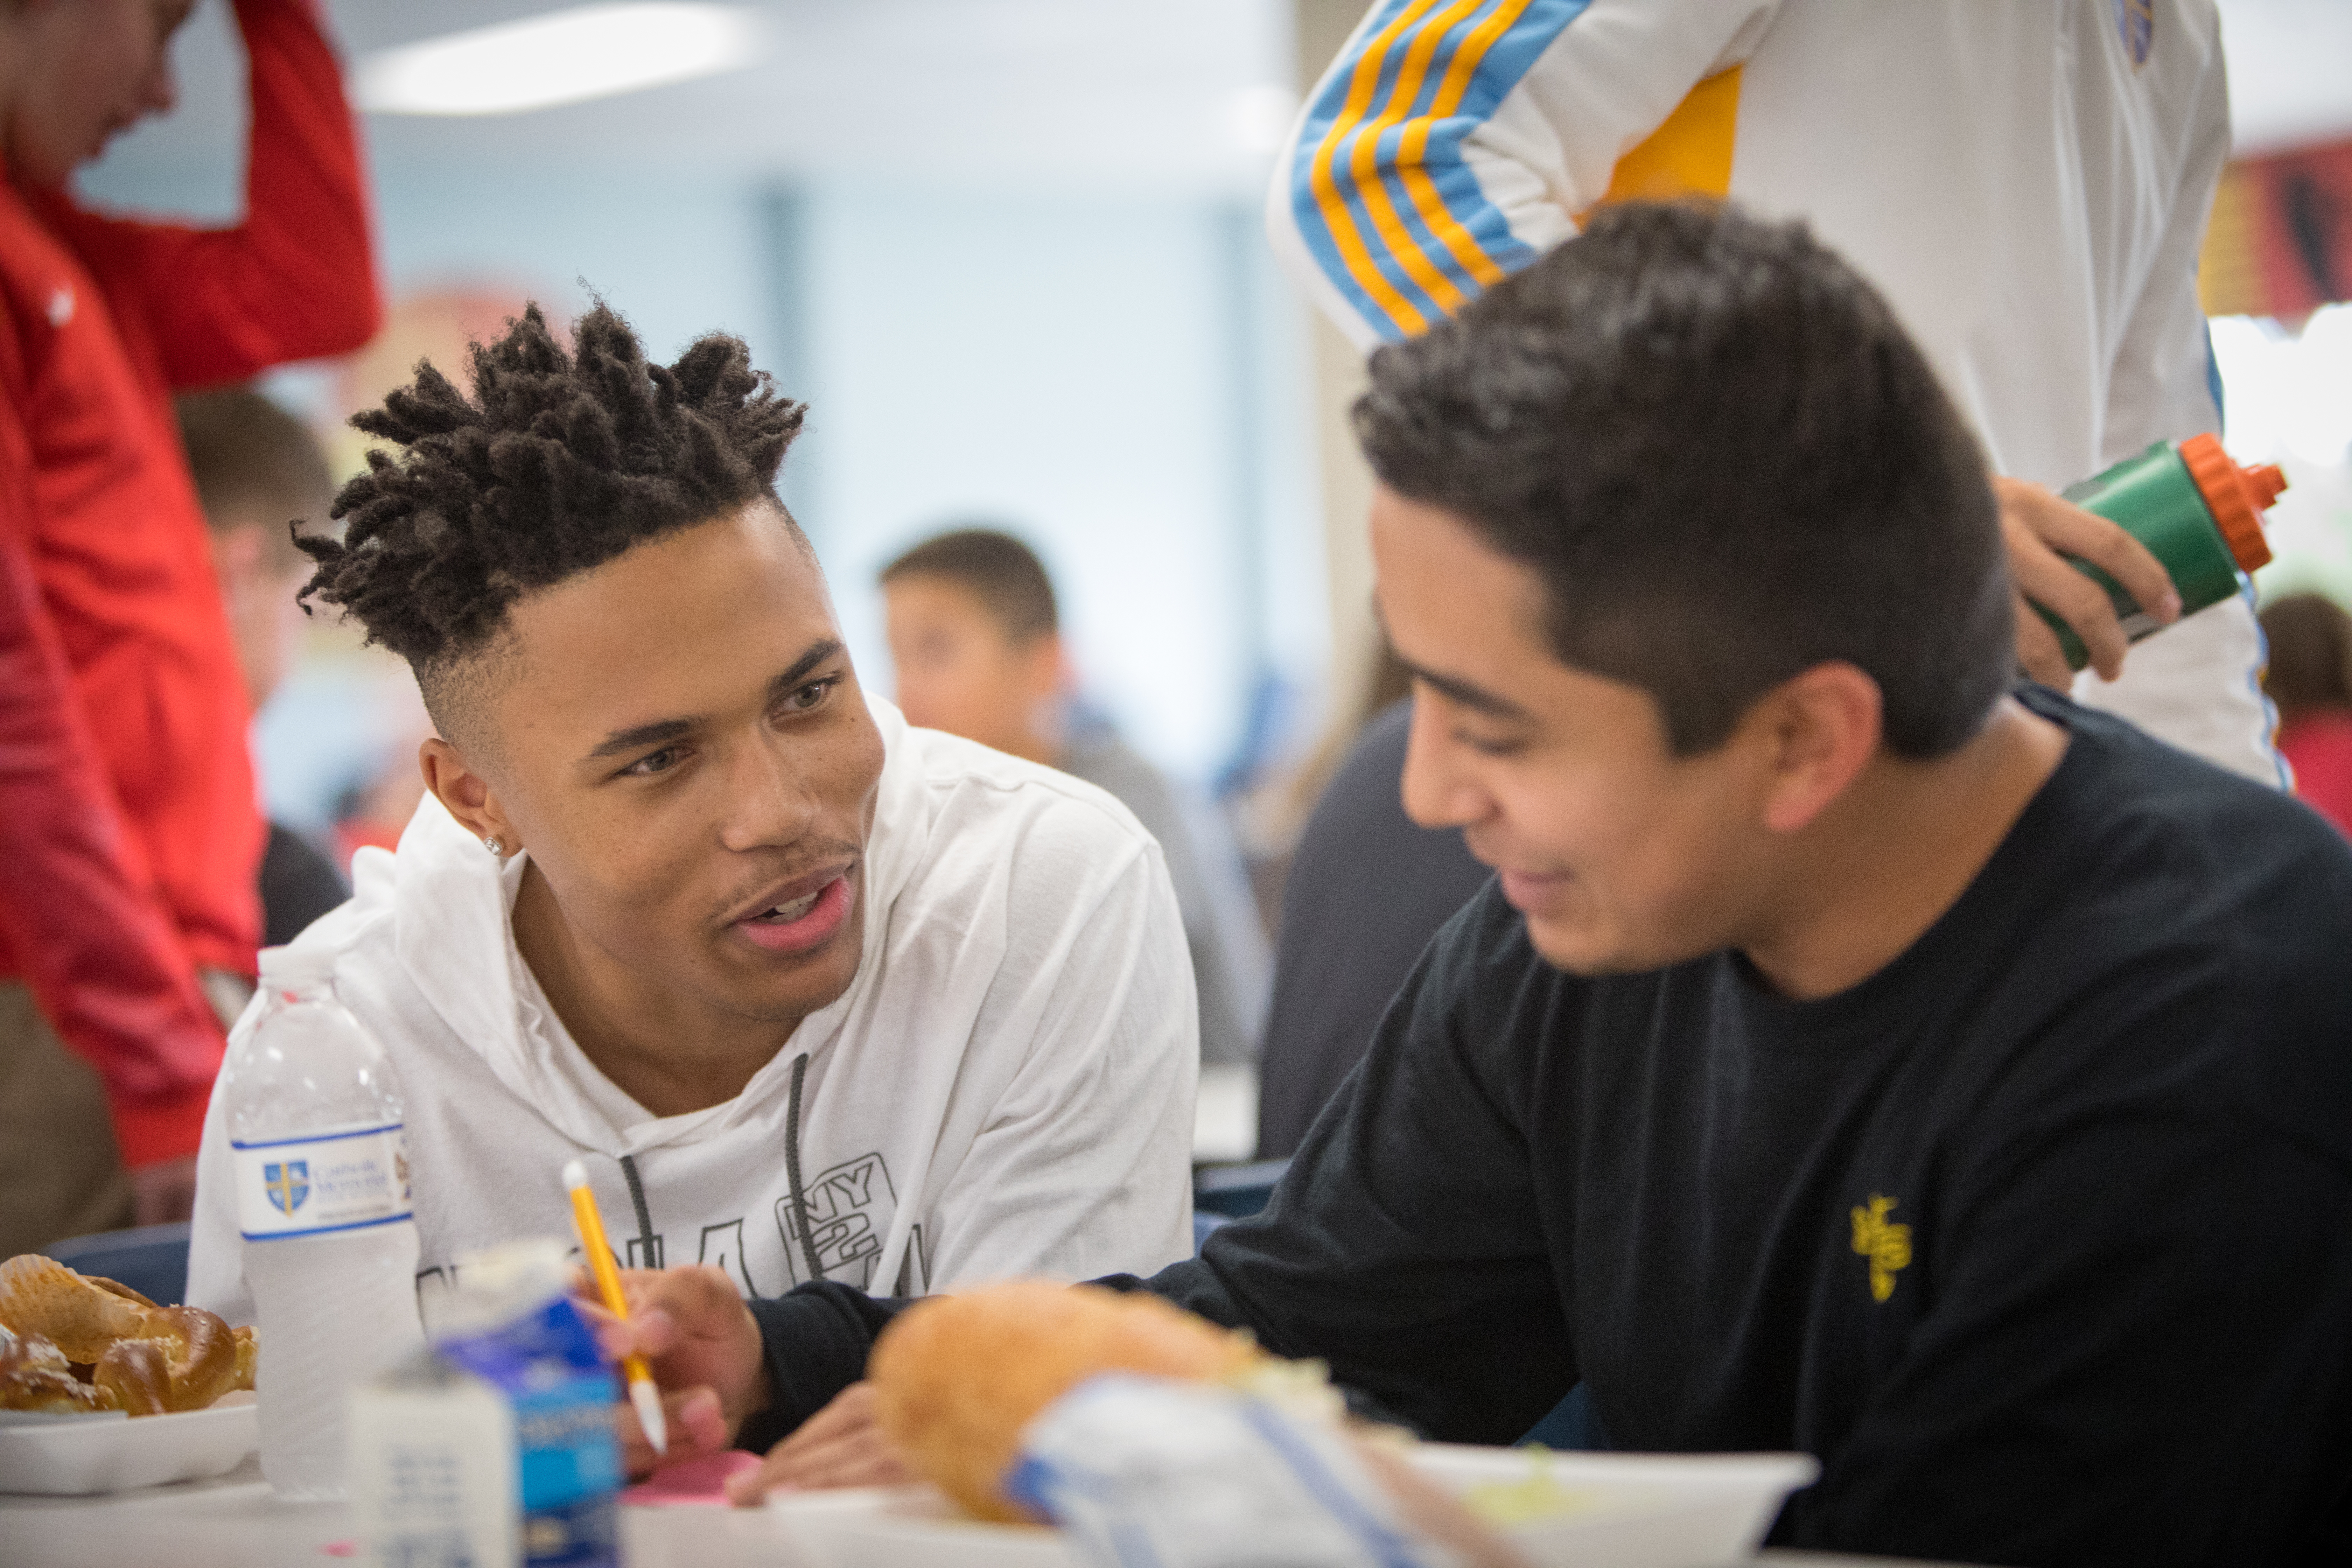 On the Table 2018, Catholic Memorial High School. Photo courtesy of the Greater Milwaukee Foundation.